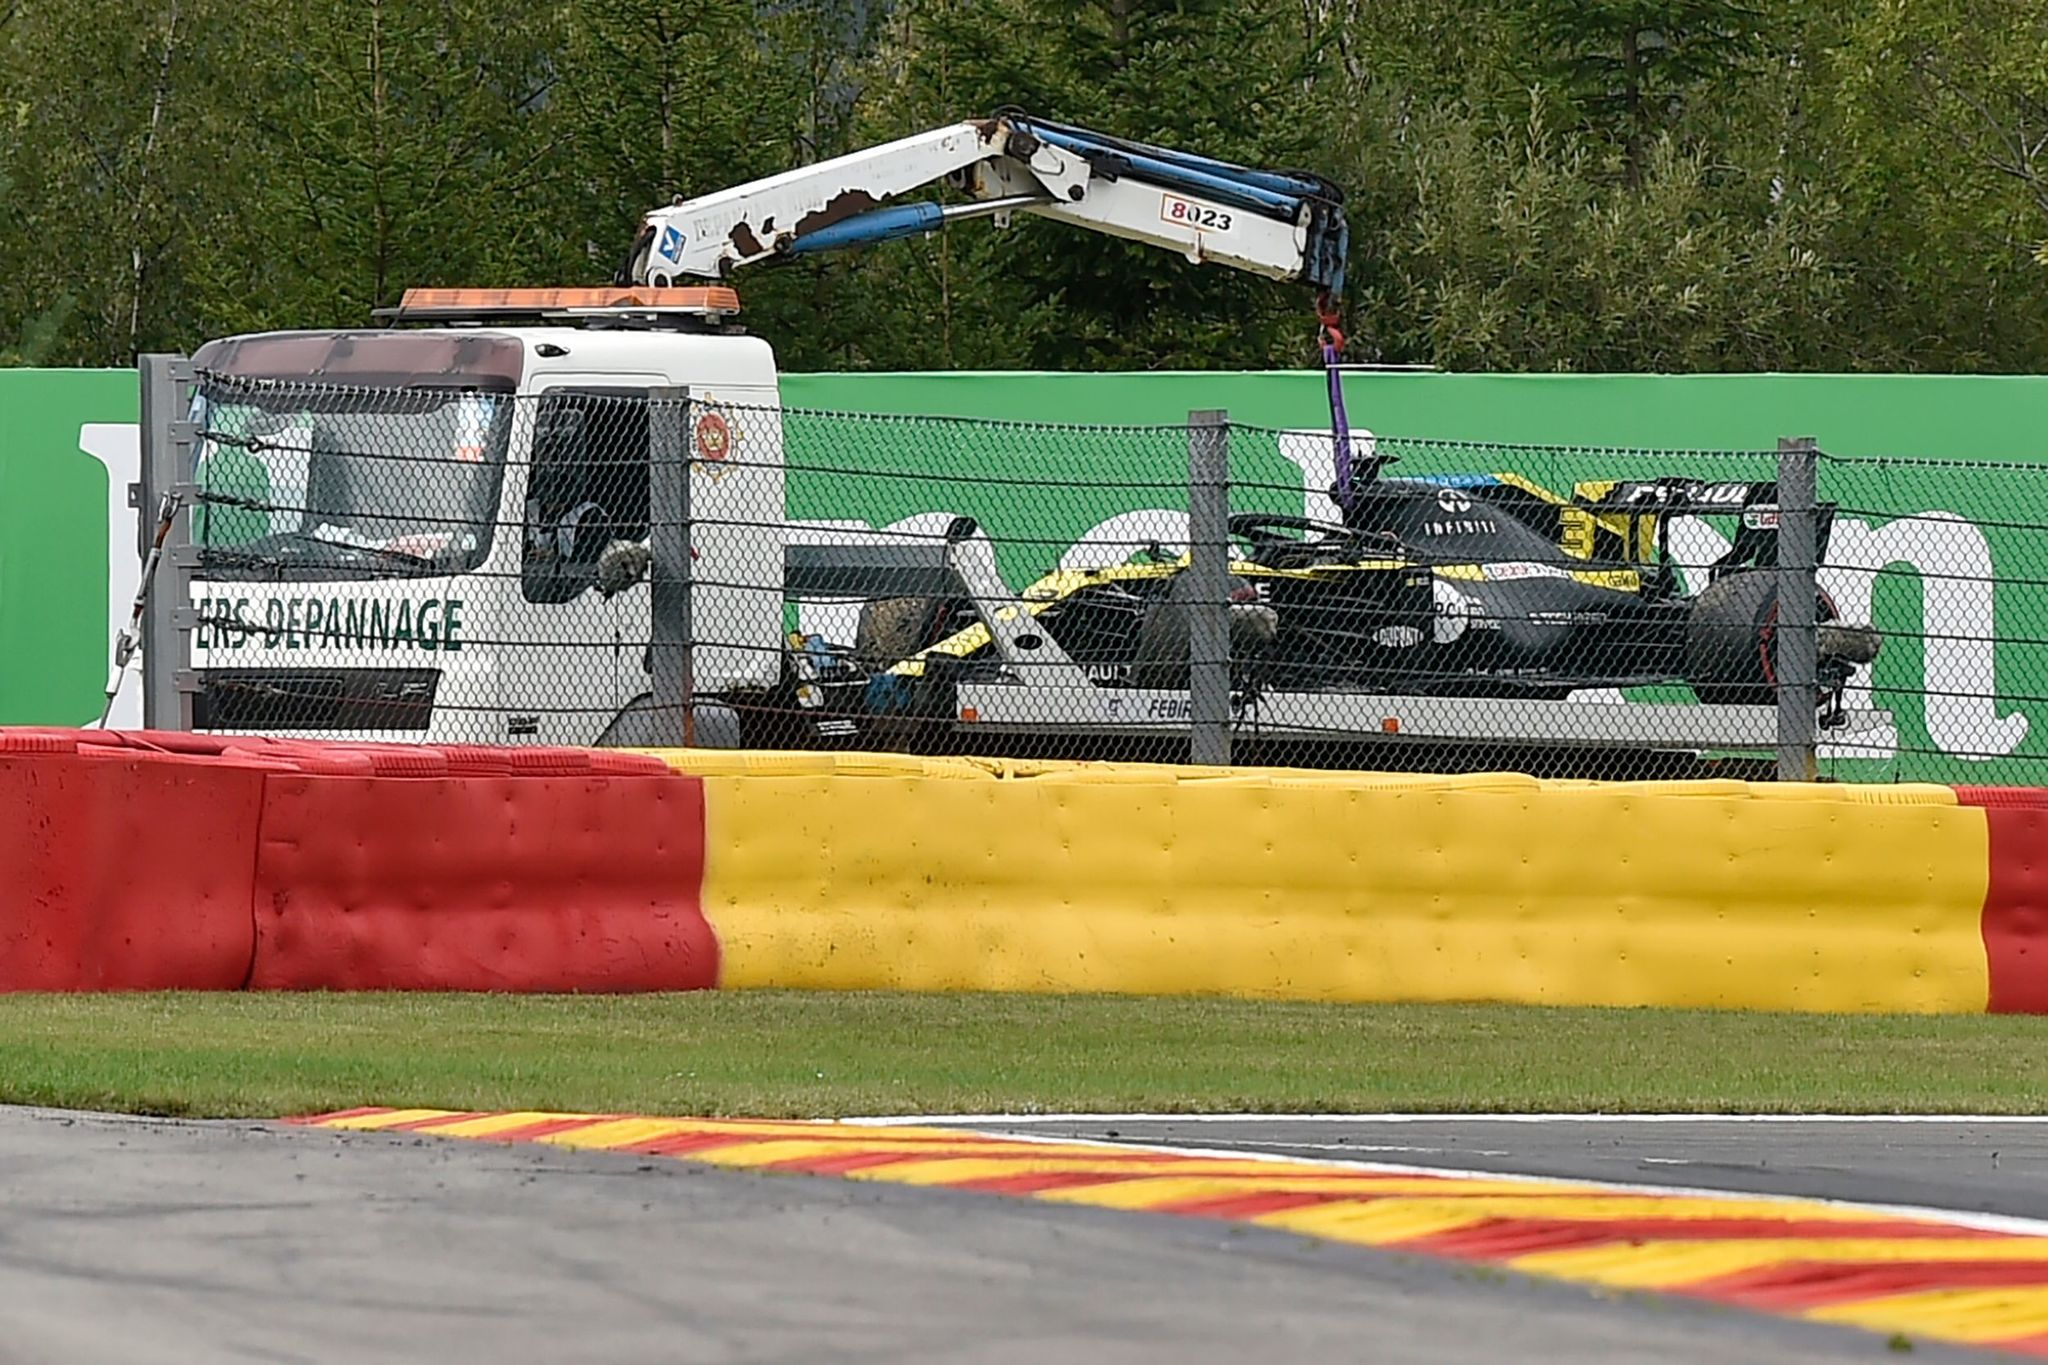 The car of Renaults Australian driver Daniel lt;HIT gt;Ricciardo lt;/HIT gt; is transported off the track after he stopped the car following loss of hydraulic pressure during the second practice session at the Spa-Francorchamps circuit in Spa on August 28, 2020 ahead of the Belgian Formula One Grand Prix. (Photo by JOHN THYS / POOL / AFP)